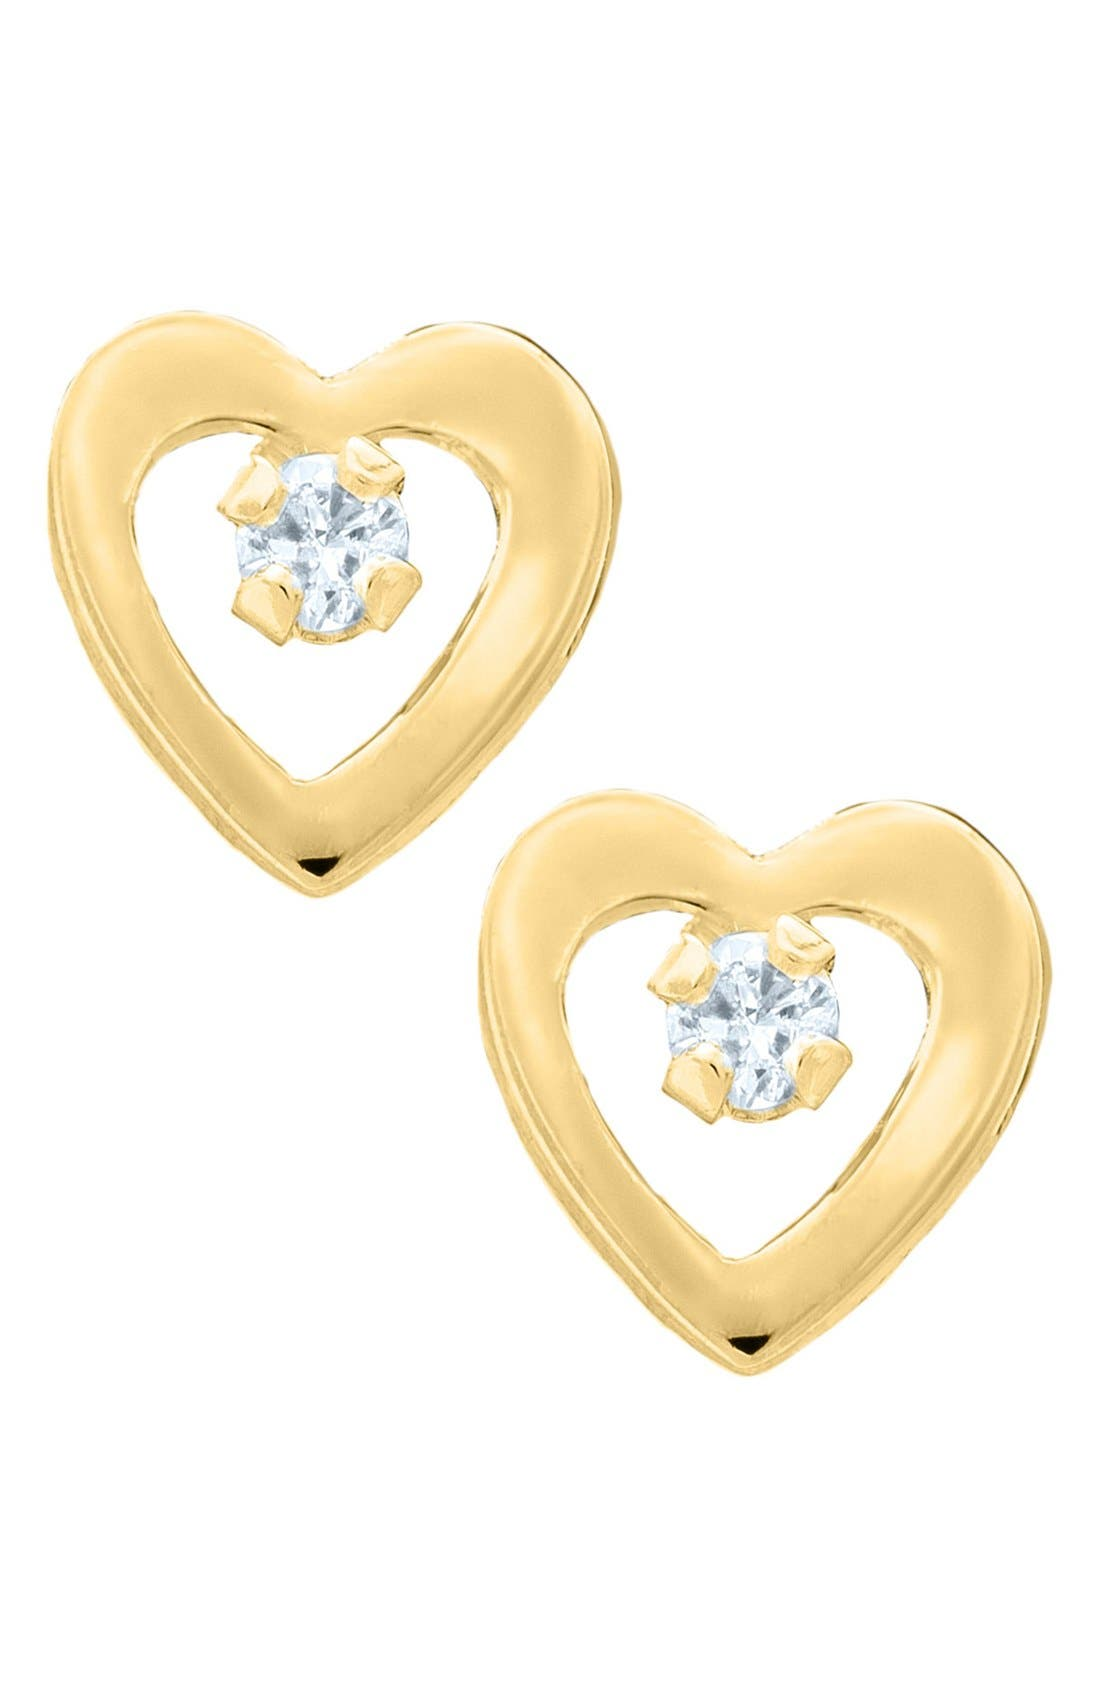 MIGNONETTE 14k Yellow Gold & Diamond Open Heart